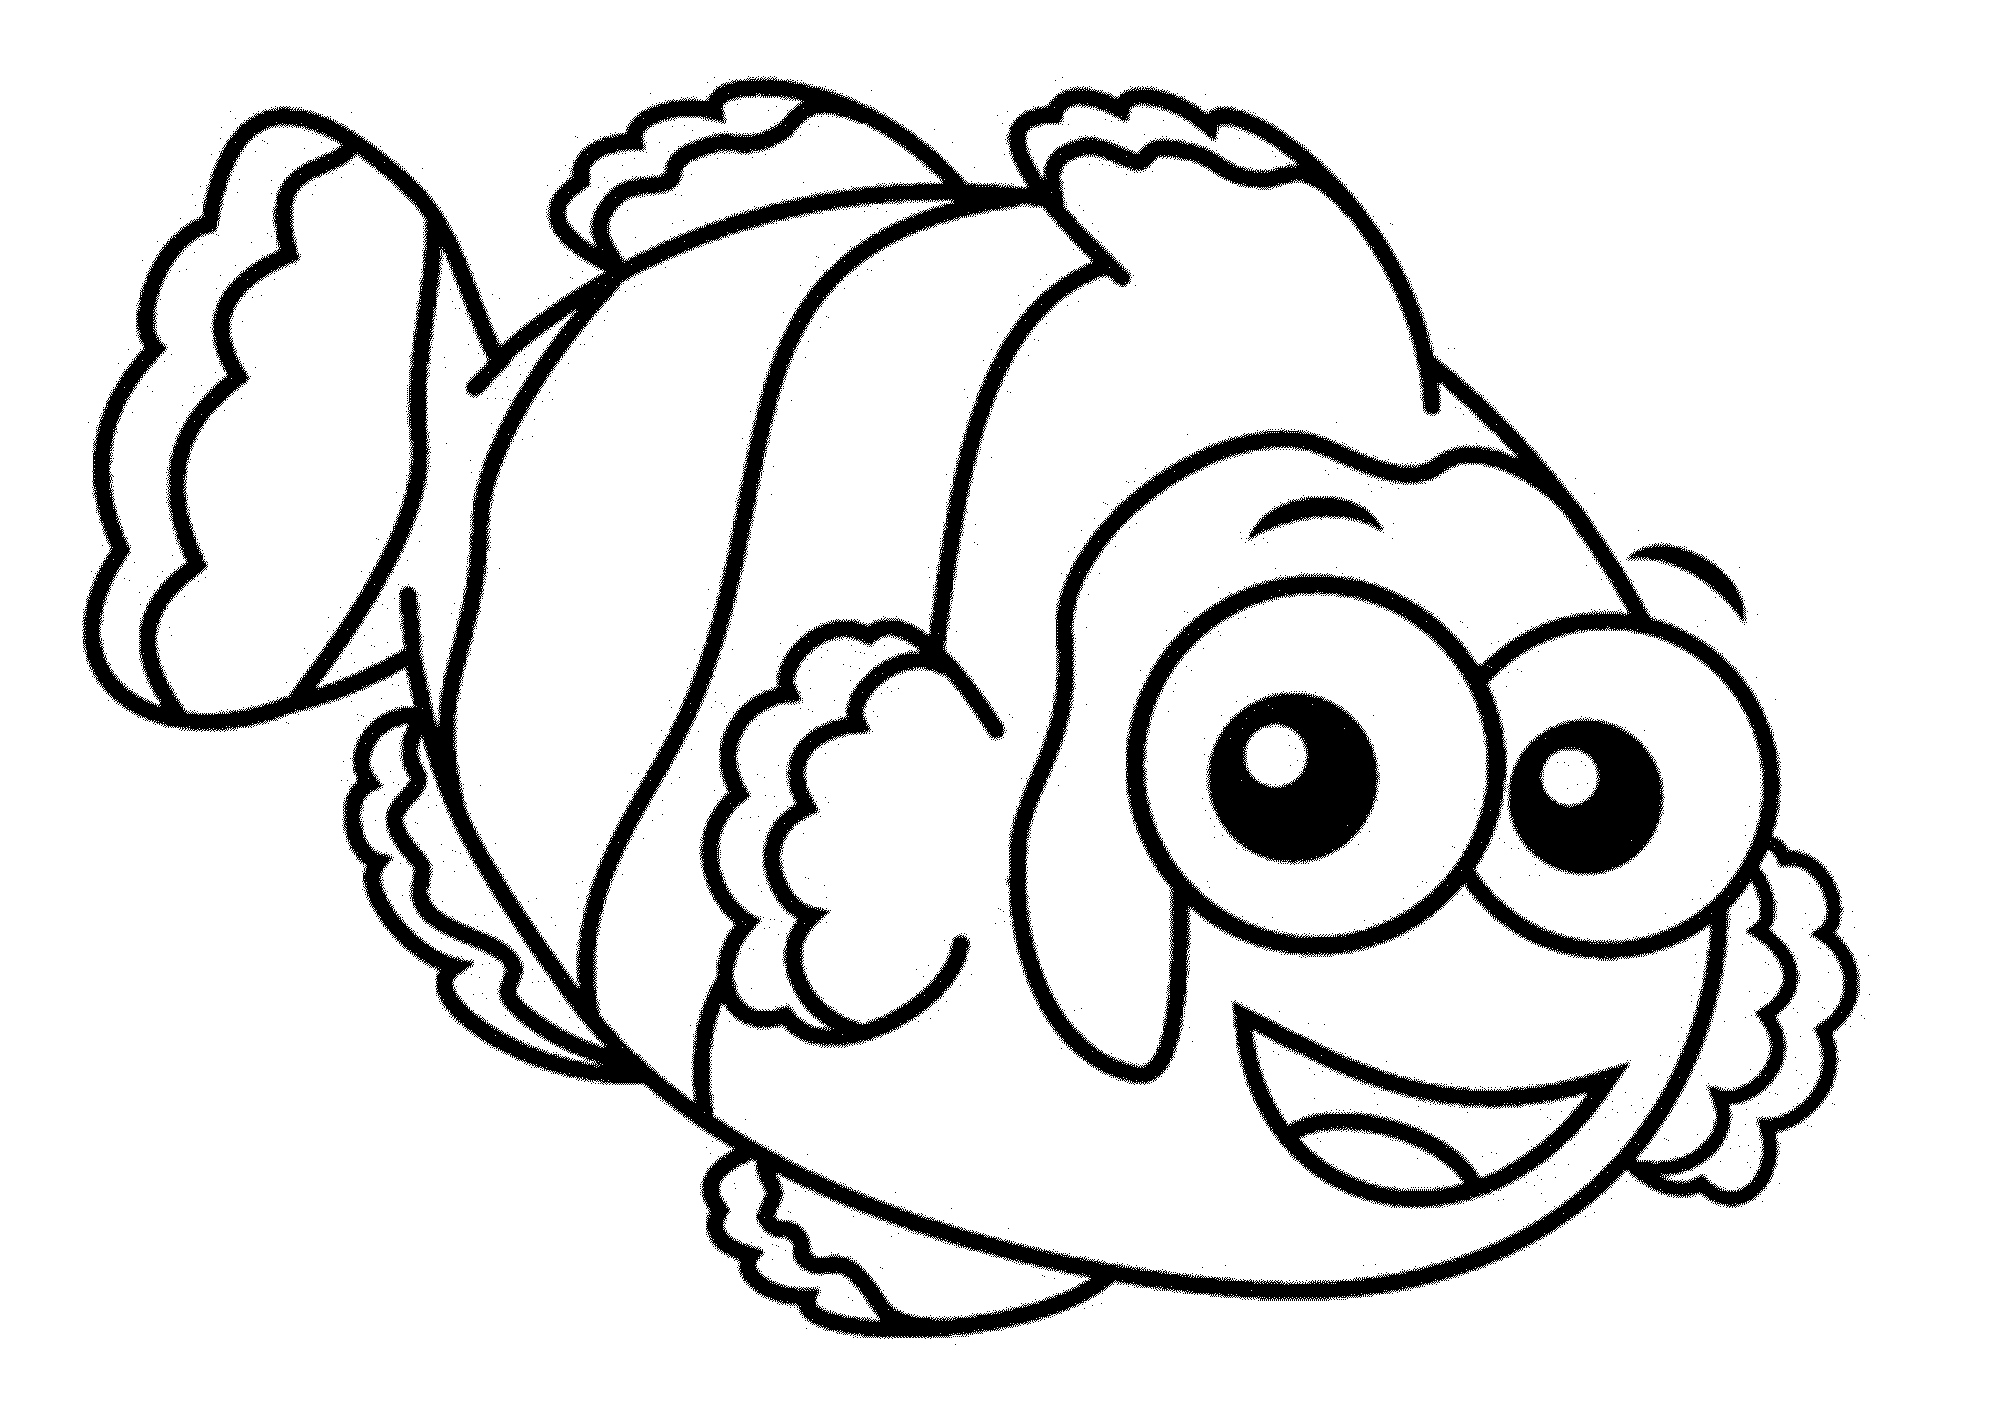 fish wildlife coloring pages | Fish Png Coloring & Free Fish Coloring.png Transparent ...